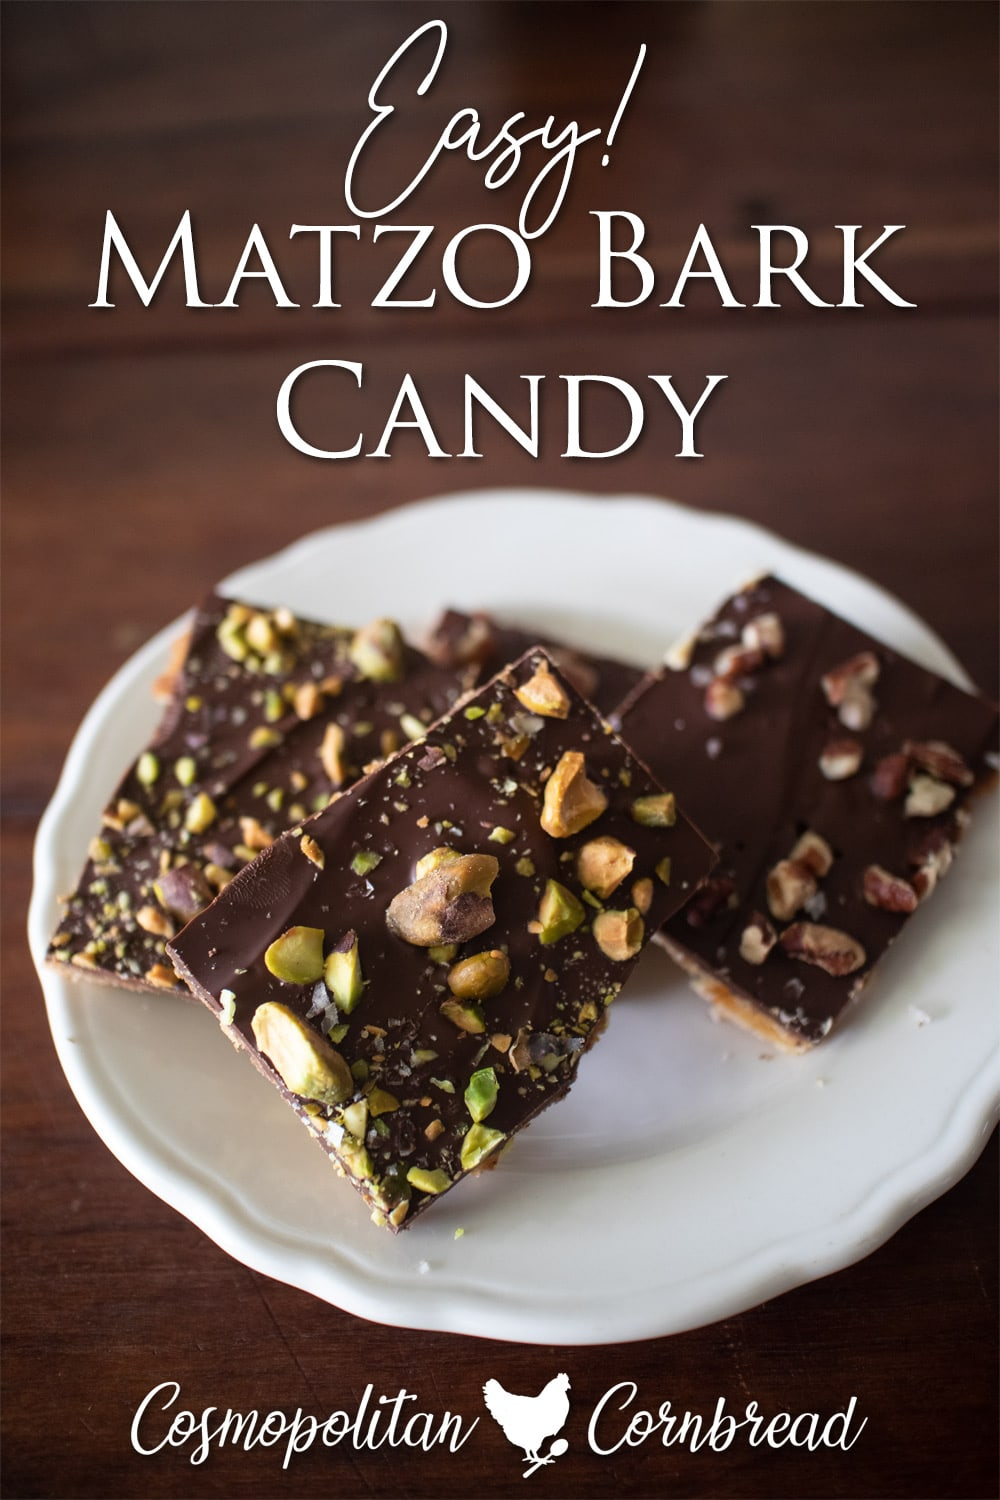 This delicious treat is called by many names: Matzo Bark, Matzo Candy or Matzo Crack...because you just can't stop eating it!